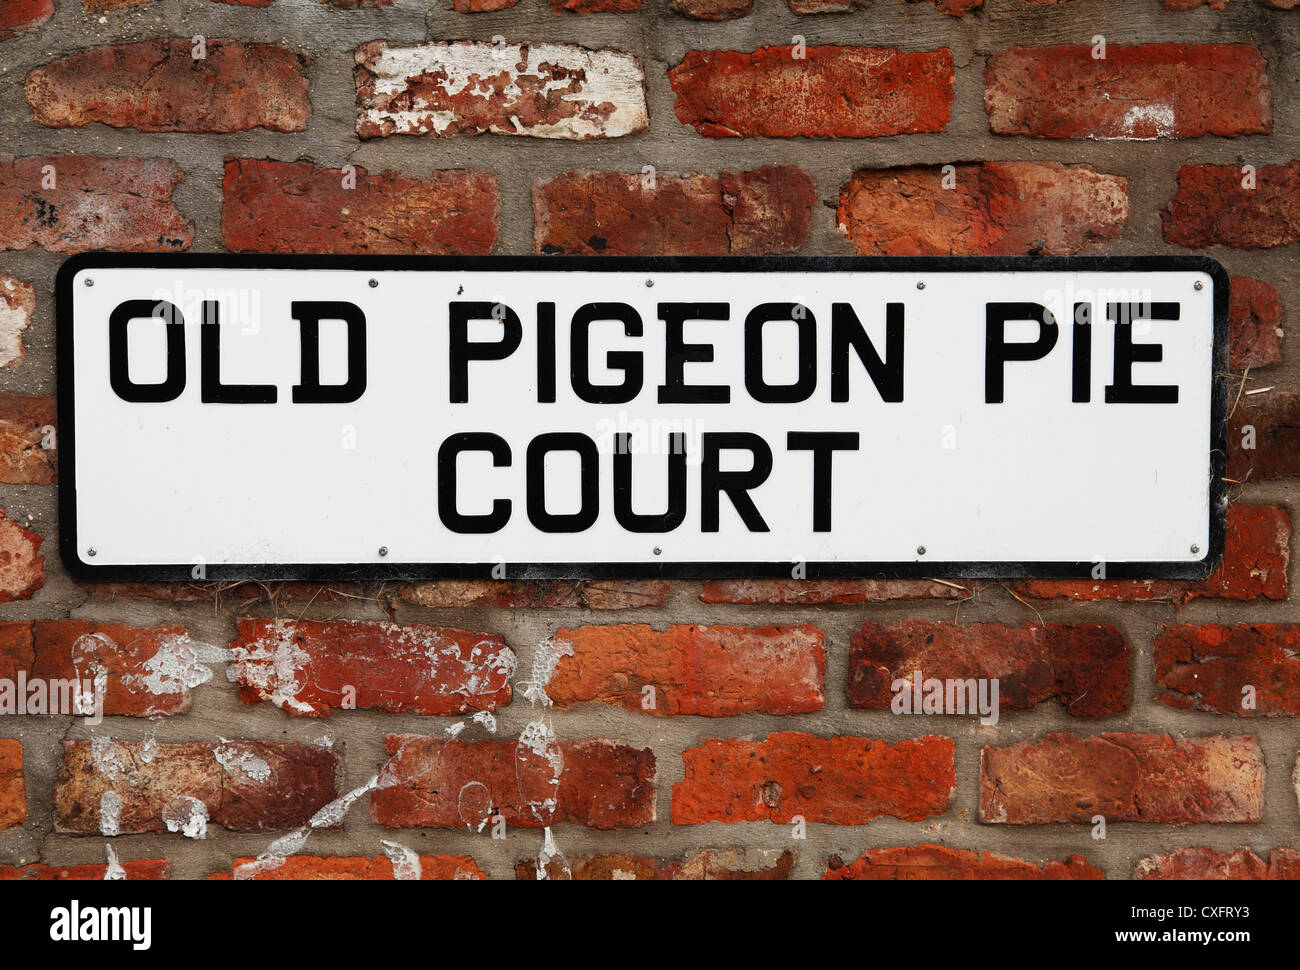 An unusual place name. Old Pigeon Pie Court, East Riding, England, U.K. - Stock Image